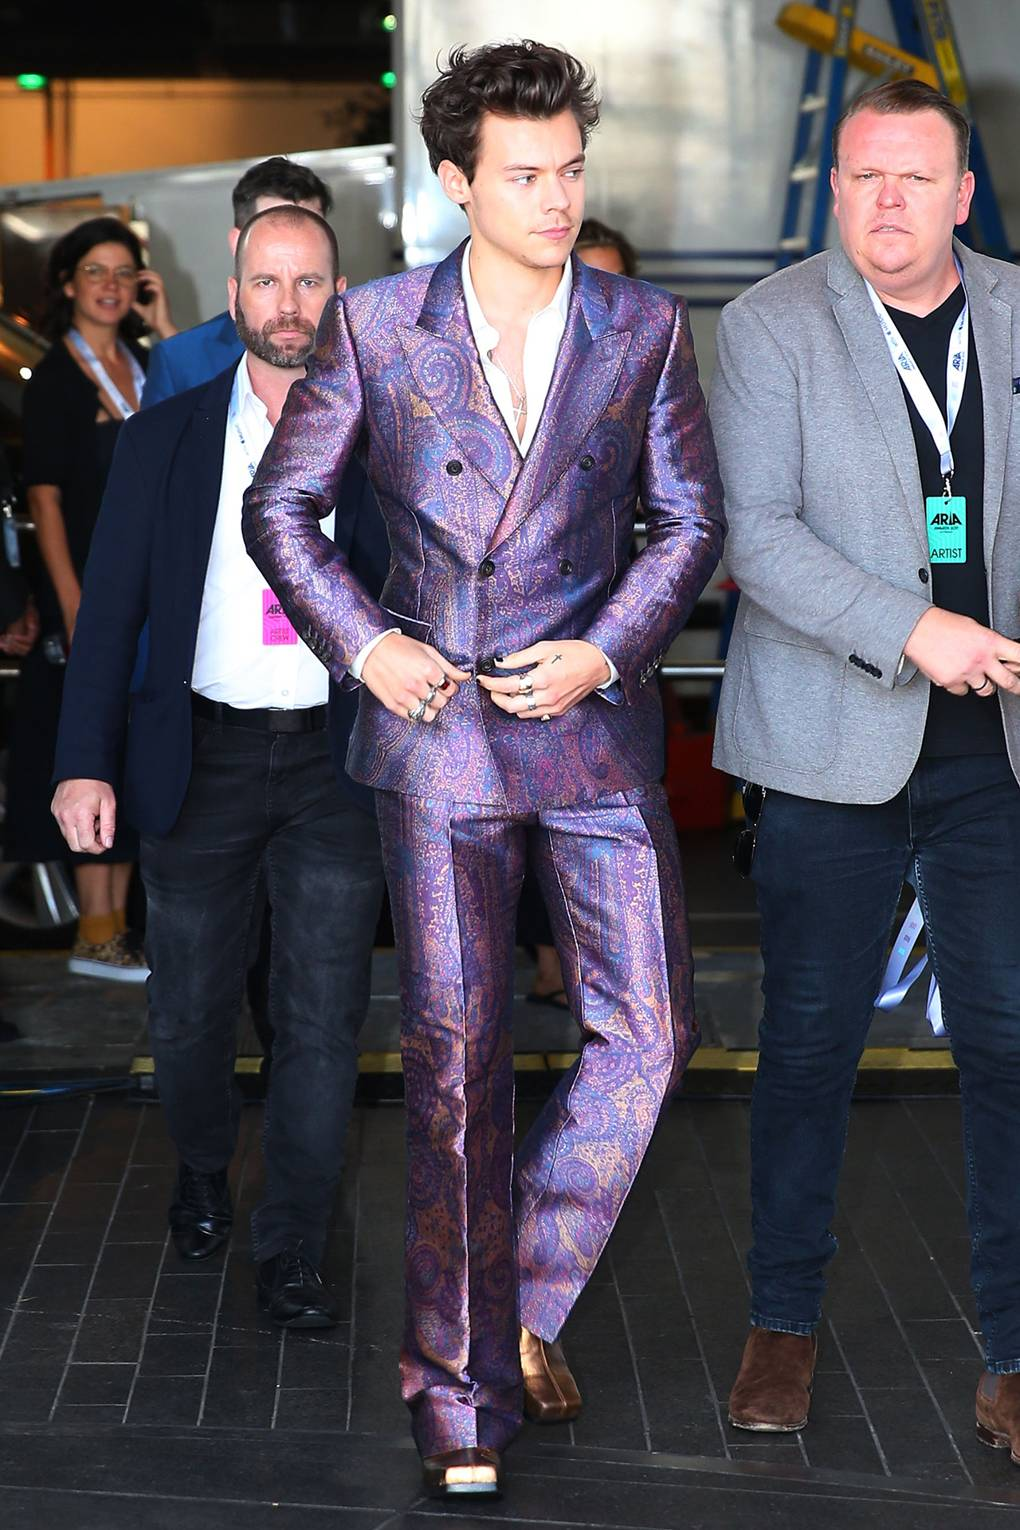 harry styles style fashion story in photos 2012 2017 lots of